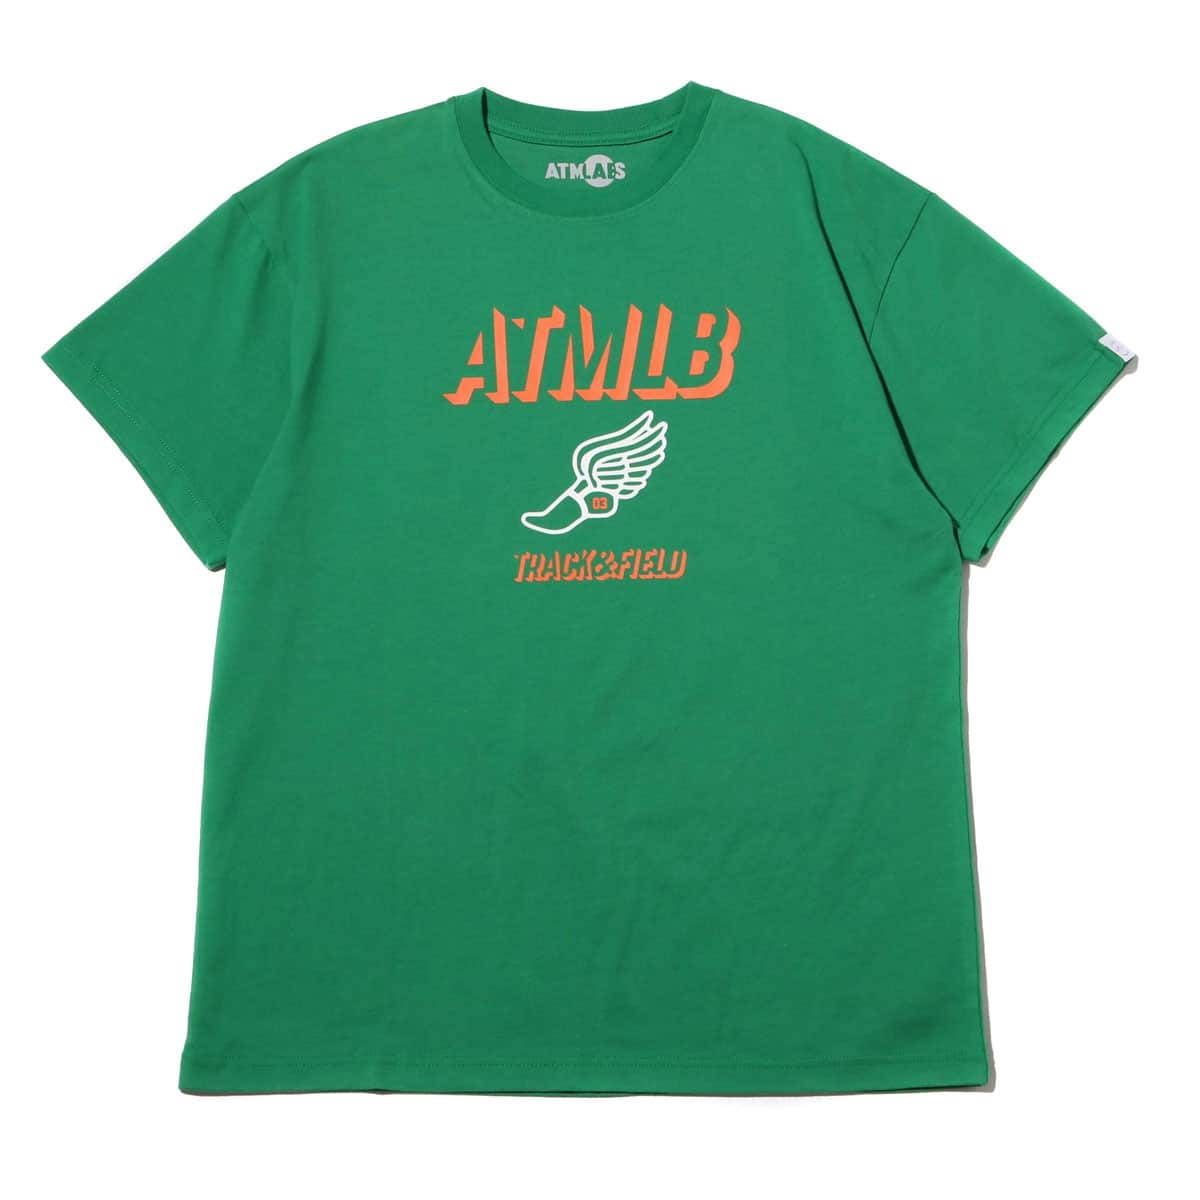 ATMOS LAB TRACK & FIELD TEE GREEN 19FW-I_photo_large